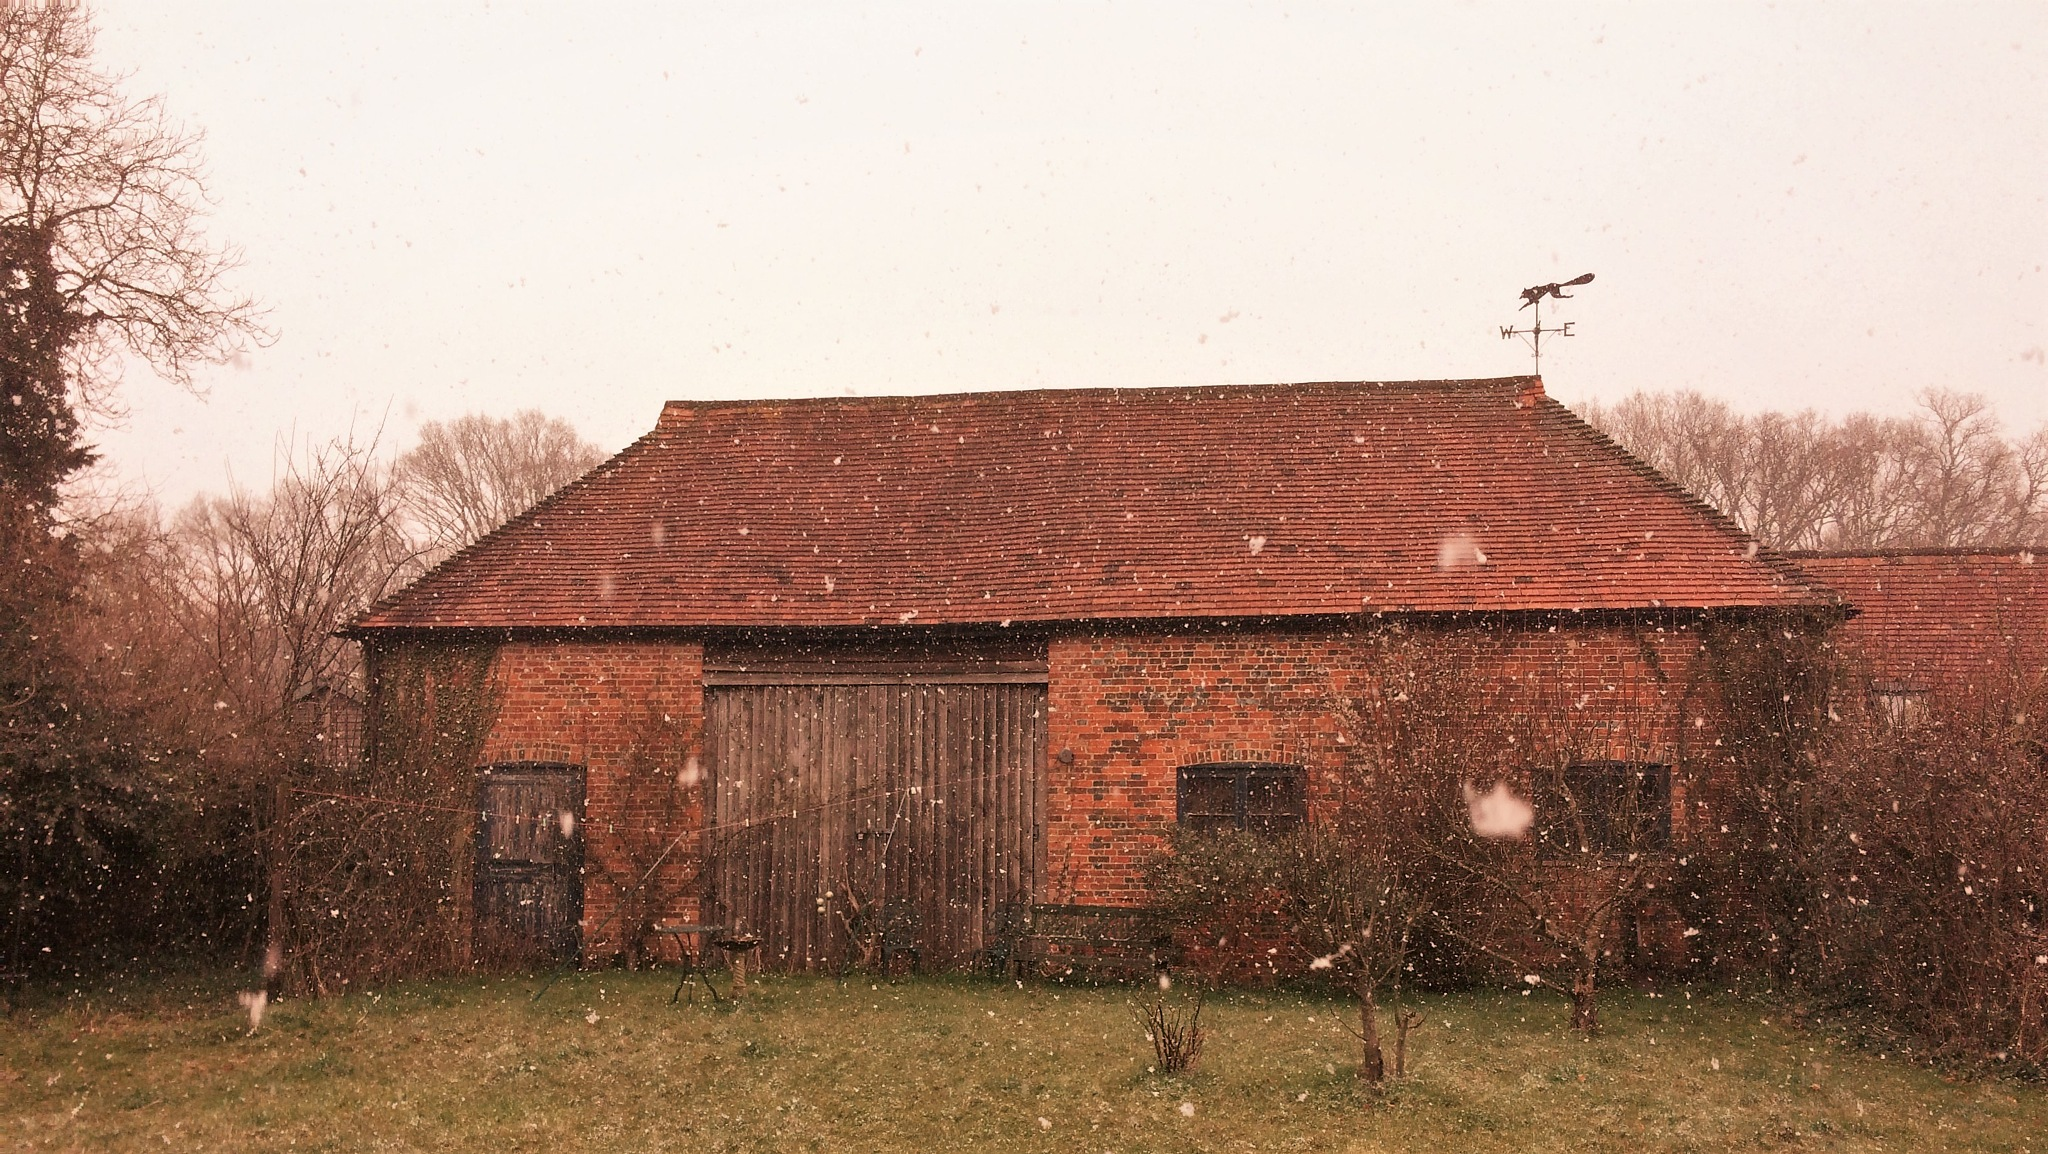 Snowing In Hampshire by geoff richards